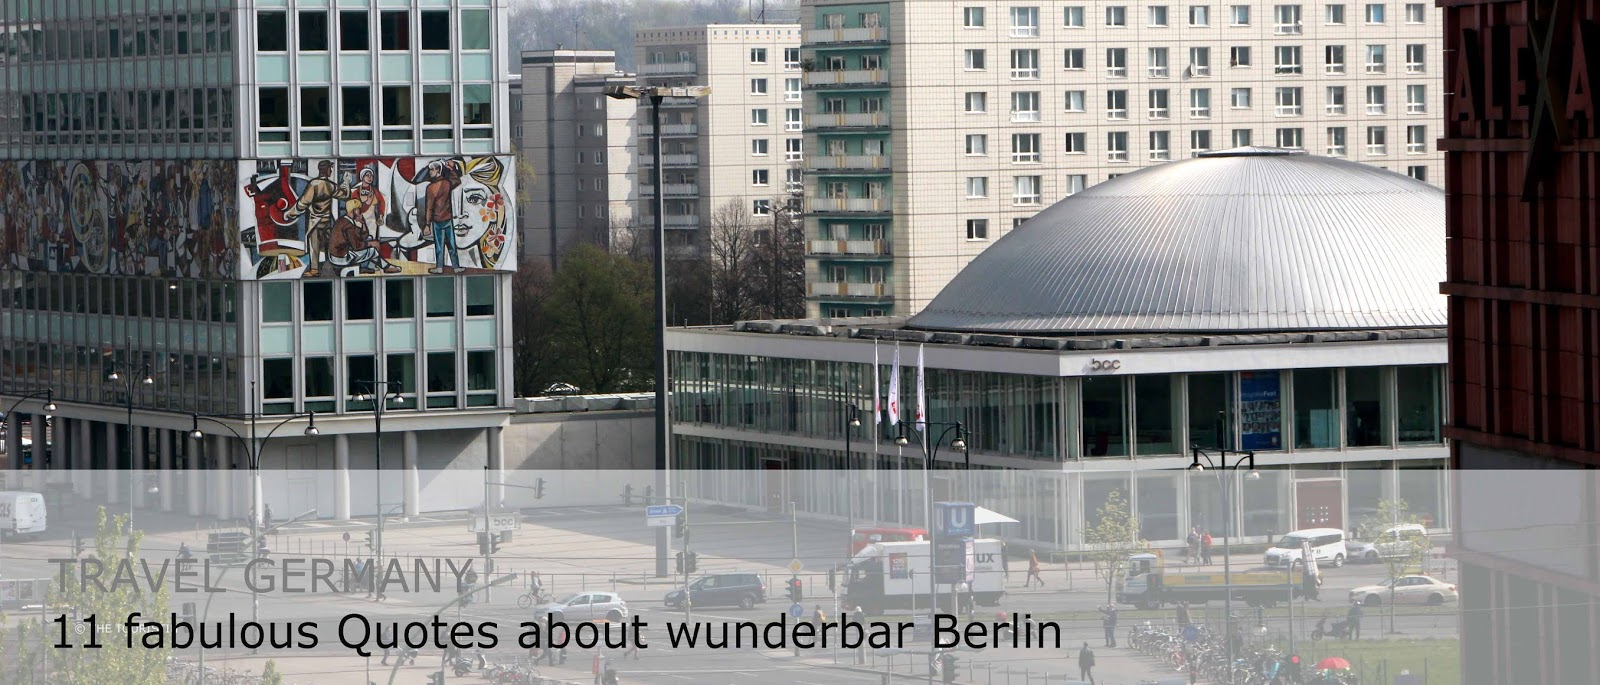 The Touristin Travel Germany 11 Fabulous Quotes About Wunderbar Berlin